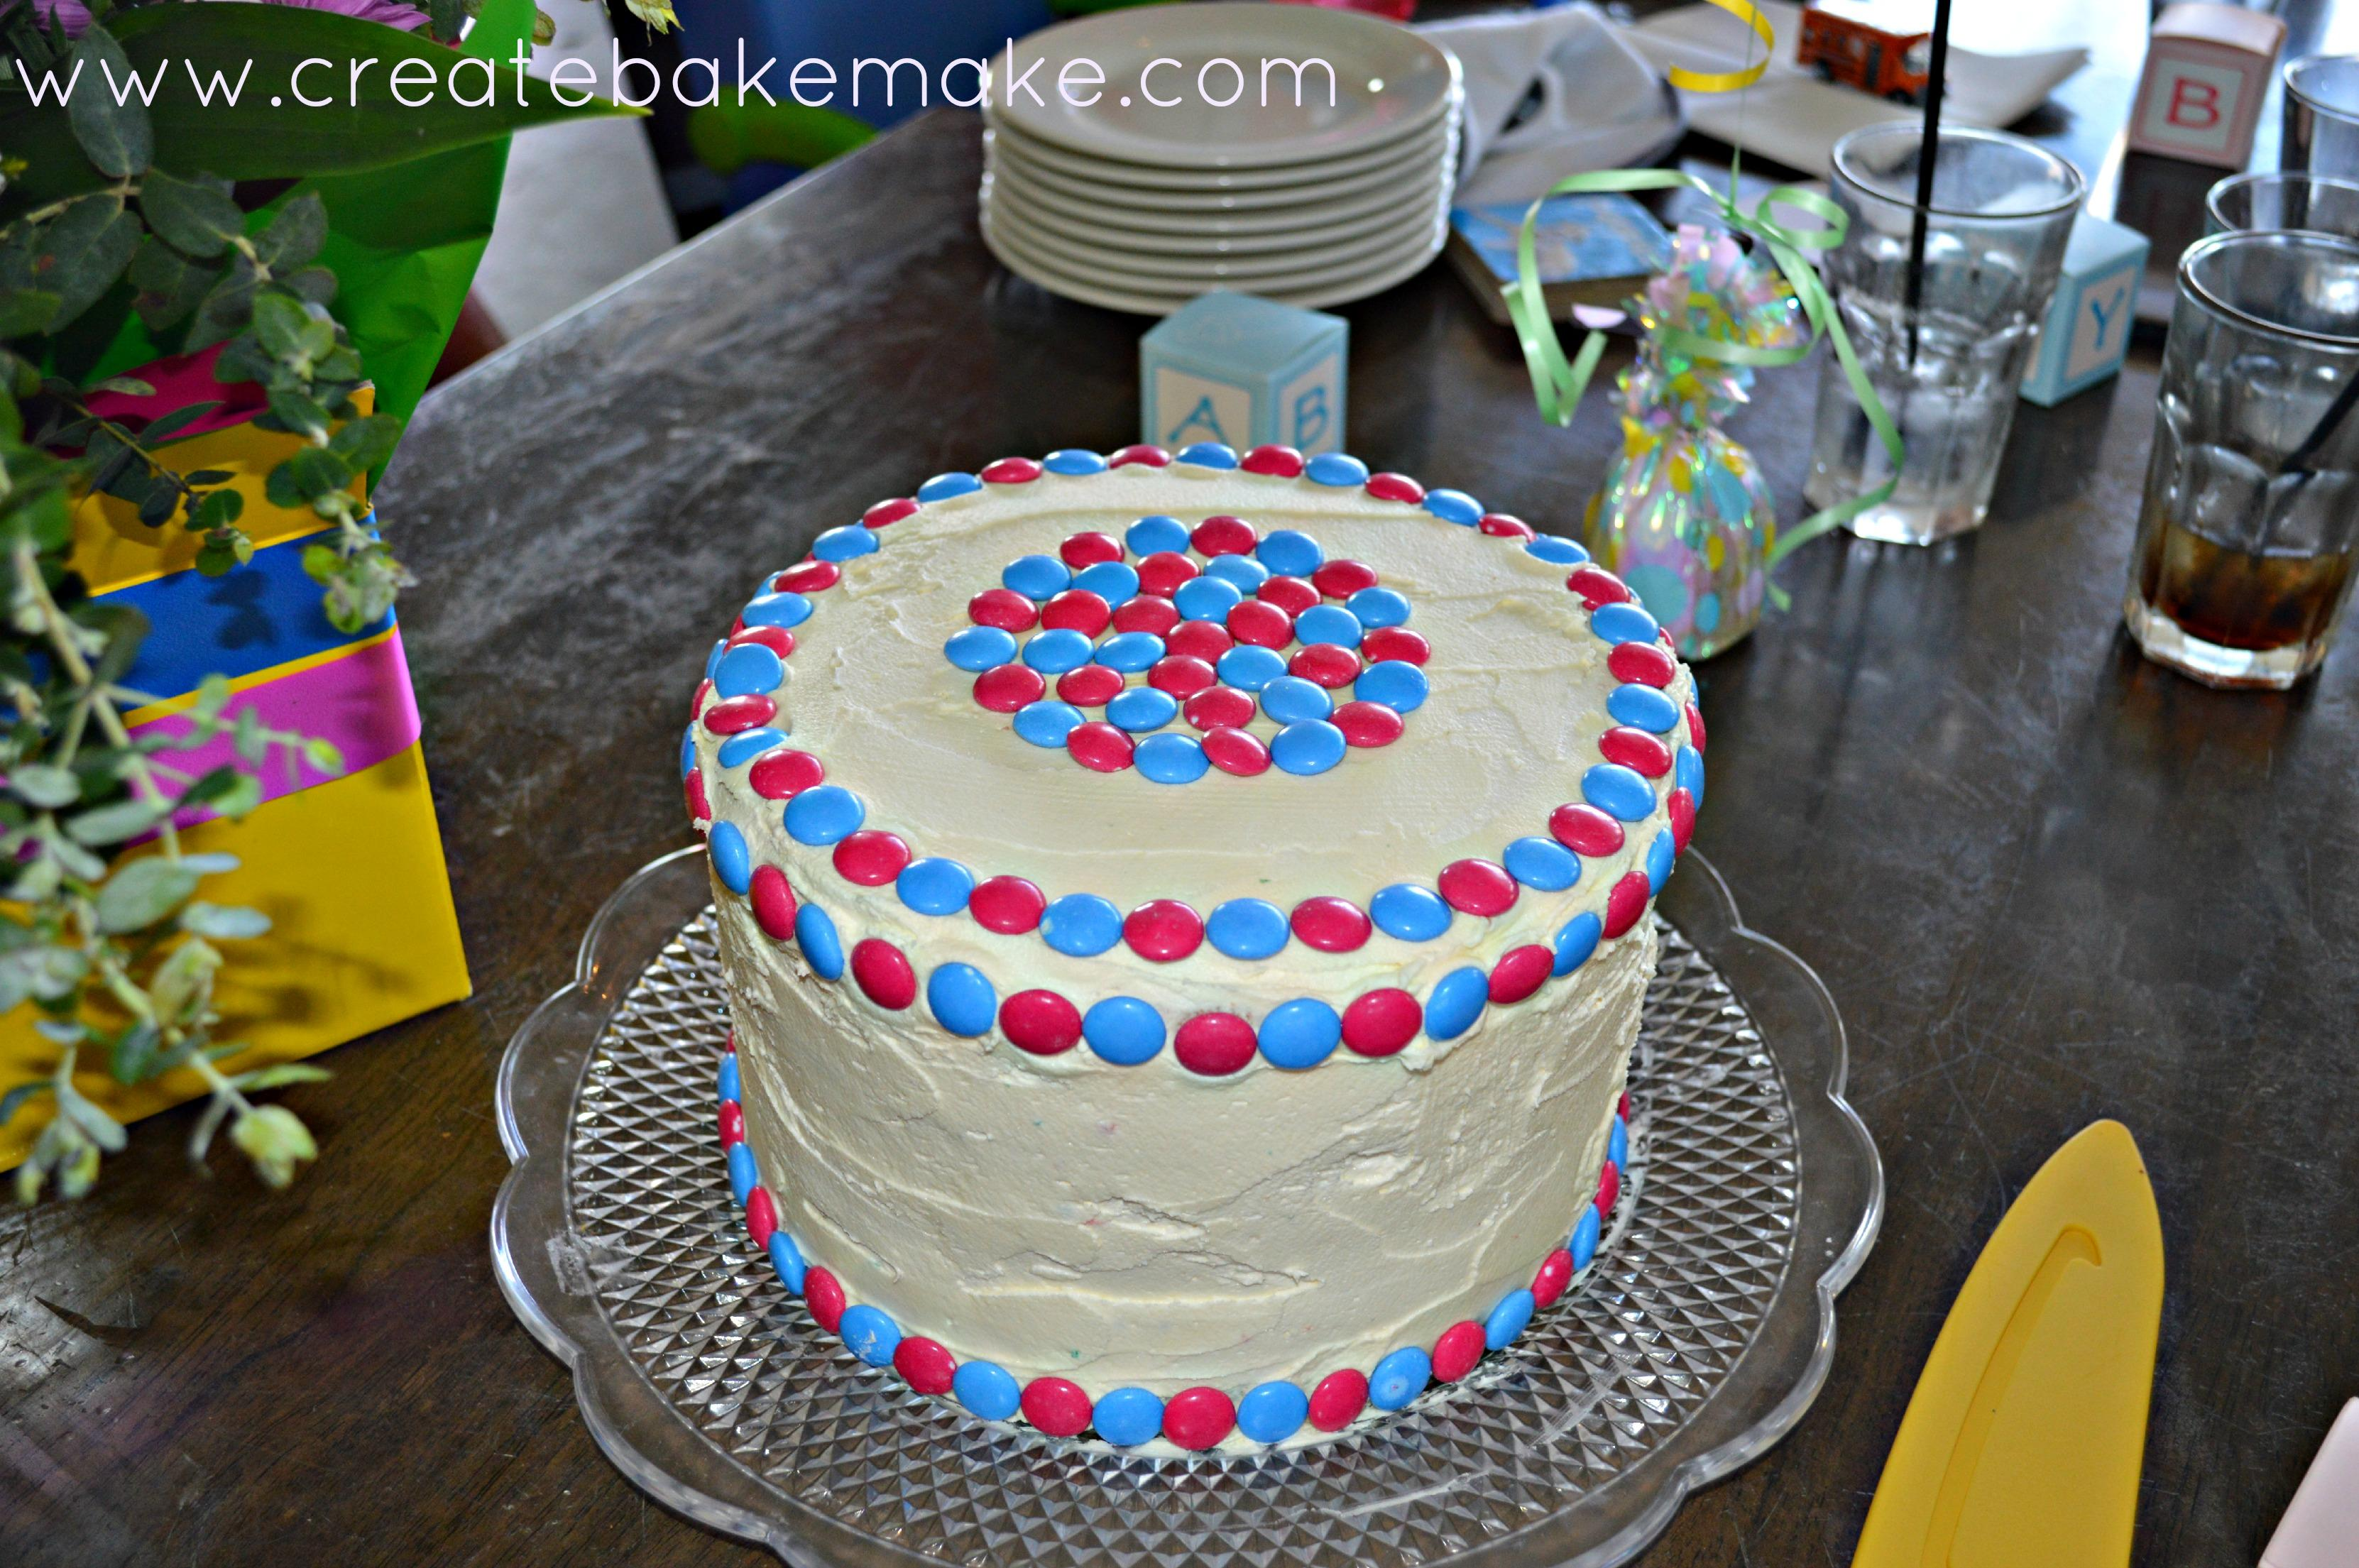 Use Butter Knife To Decorate Outside Of Cake